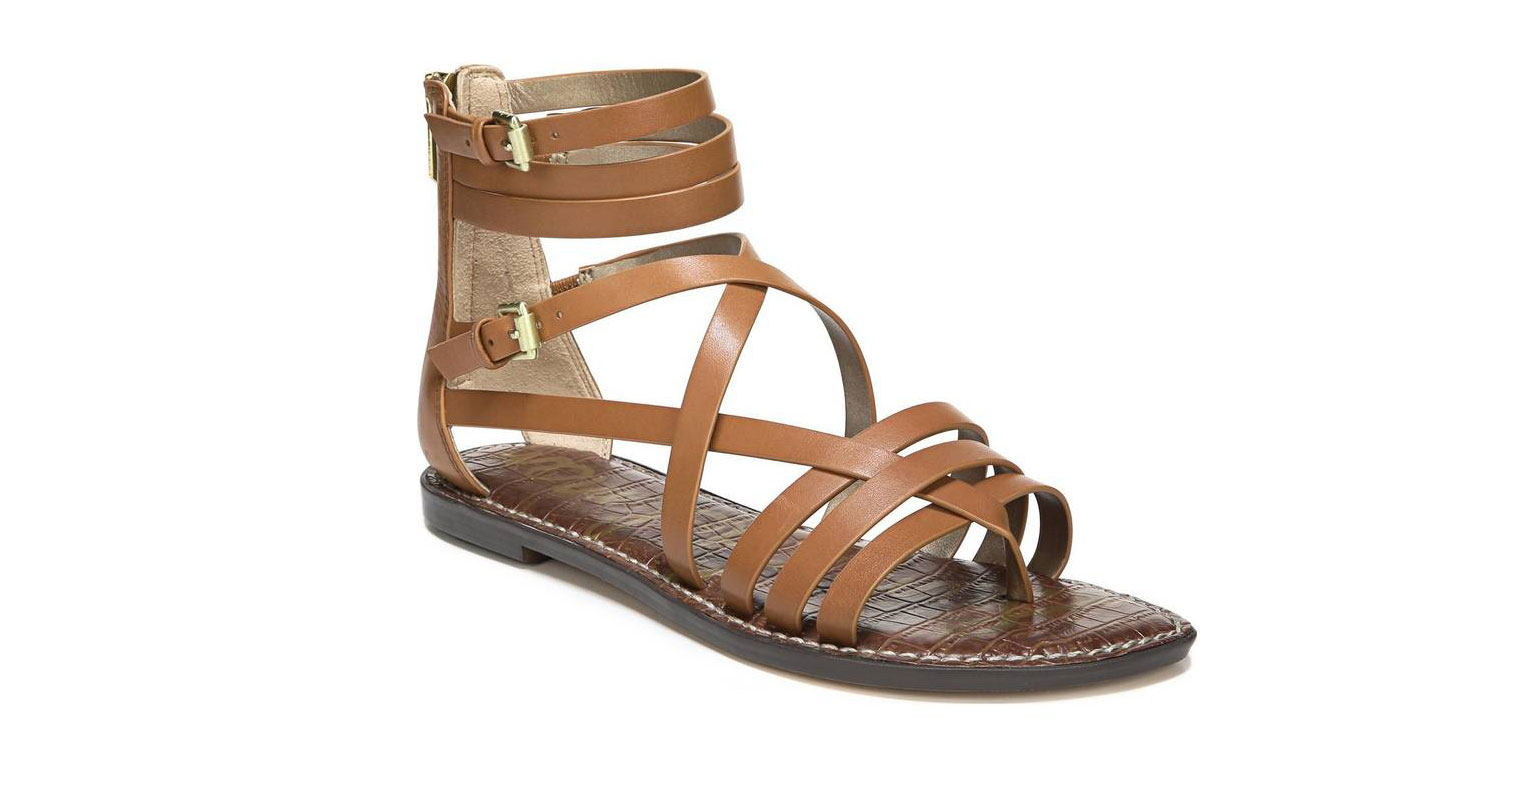 Ganesa Strappy Sandal in Saddle Leather